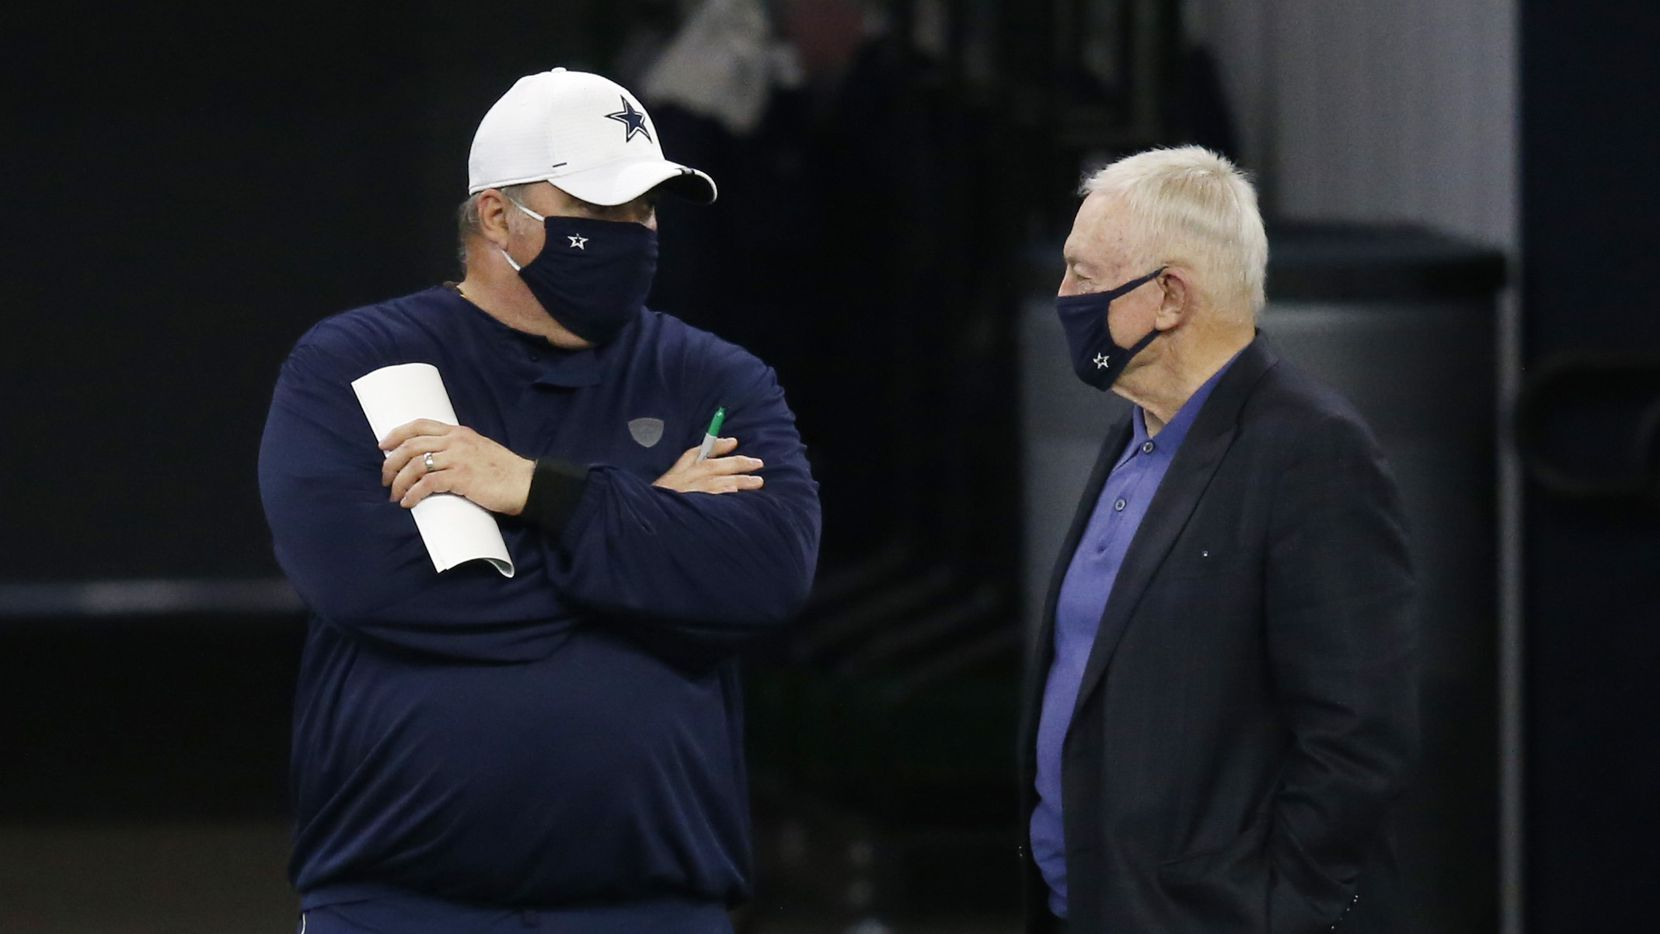 Cowboys head coach Mike McCarthy talks to team owner and general manager Jerry Jones on the sideline in practice during training camp at The Star in Frisco on Monday, Aug. 31, 2020.